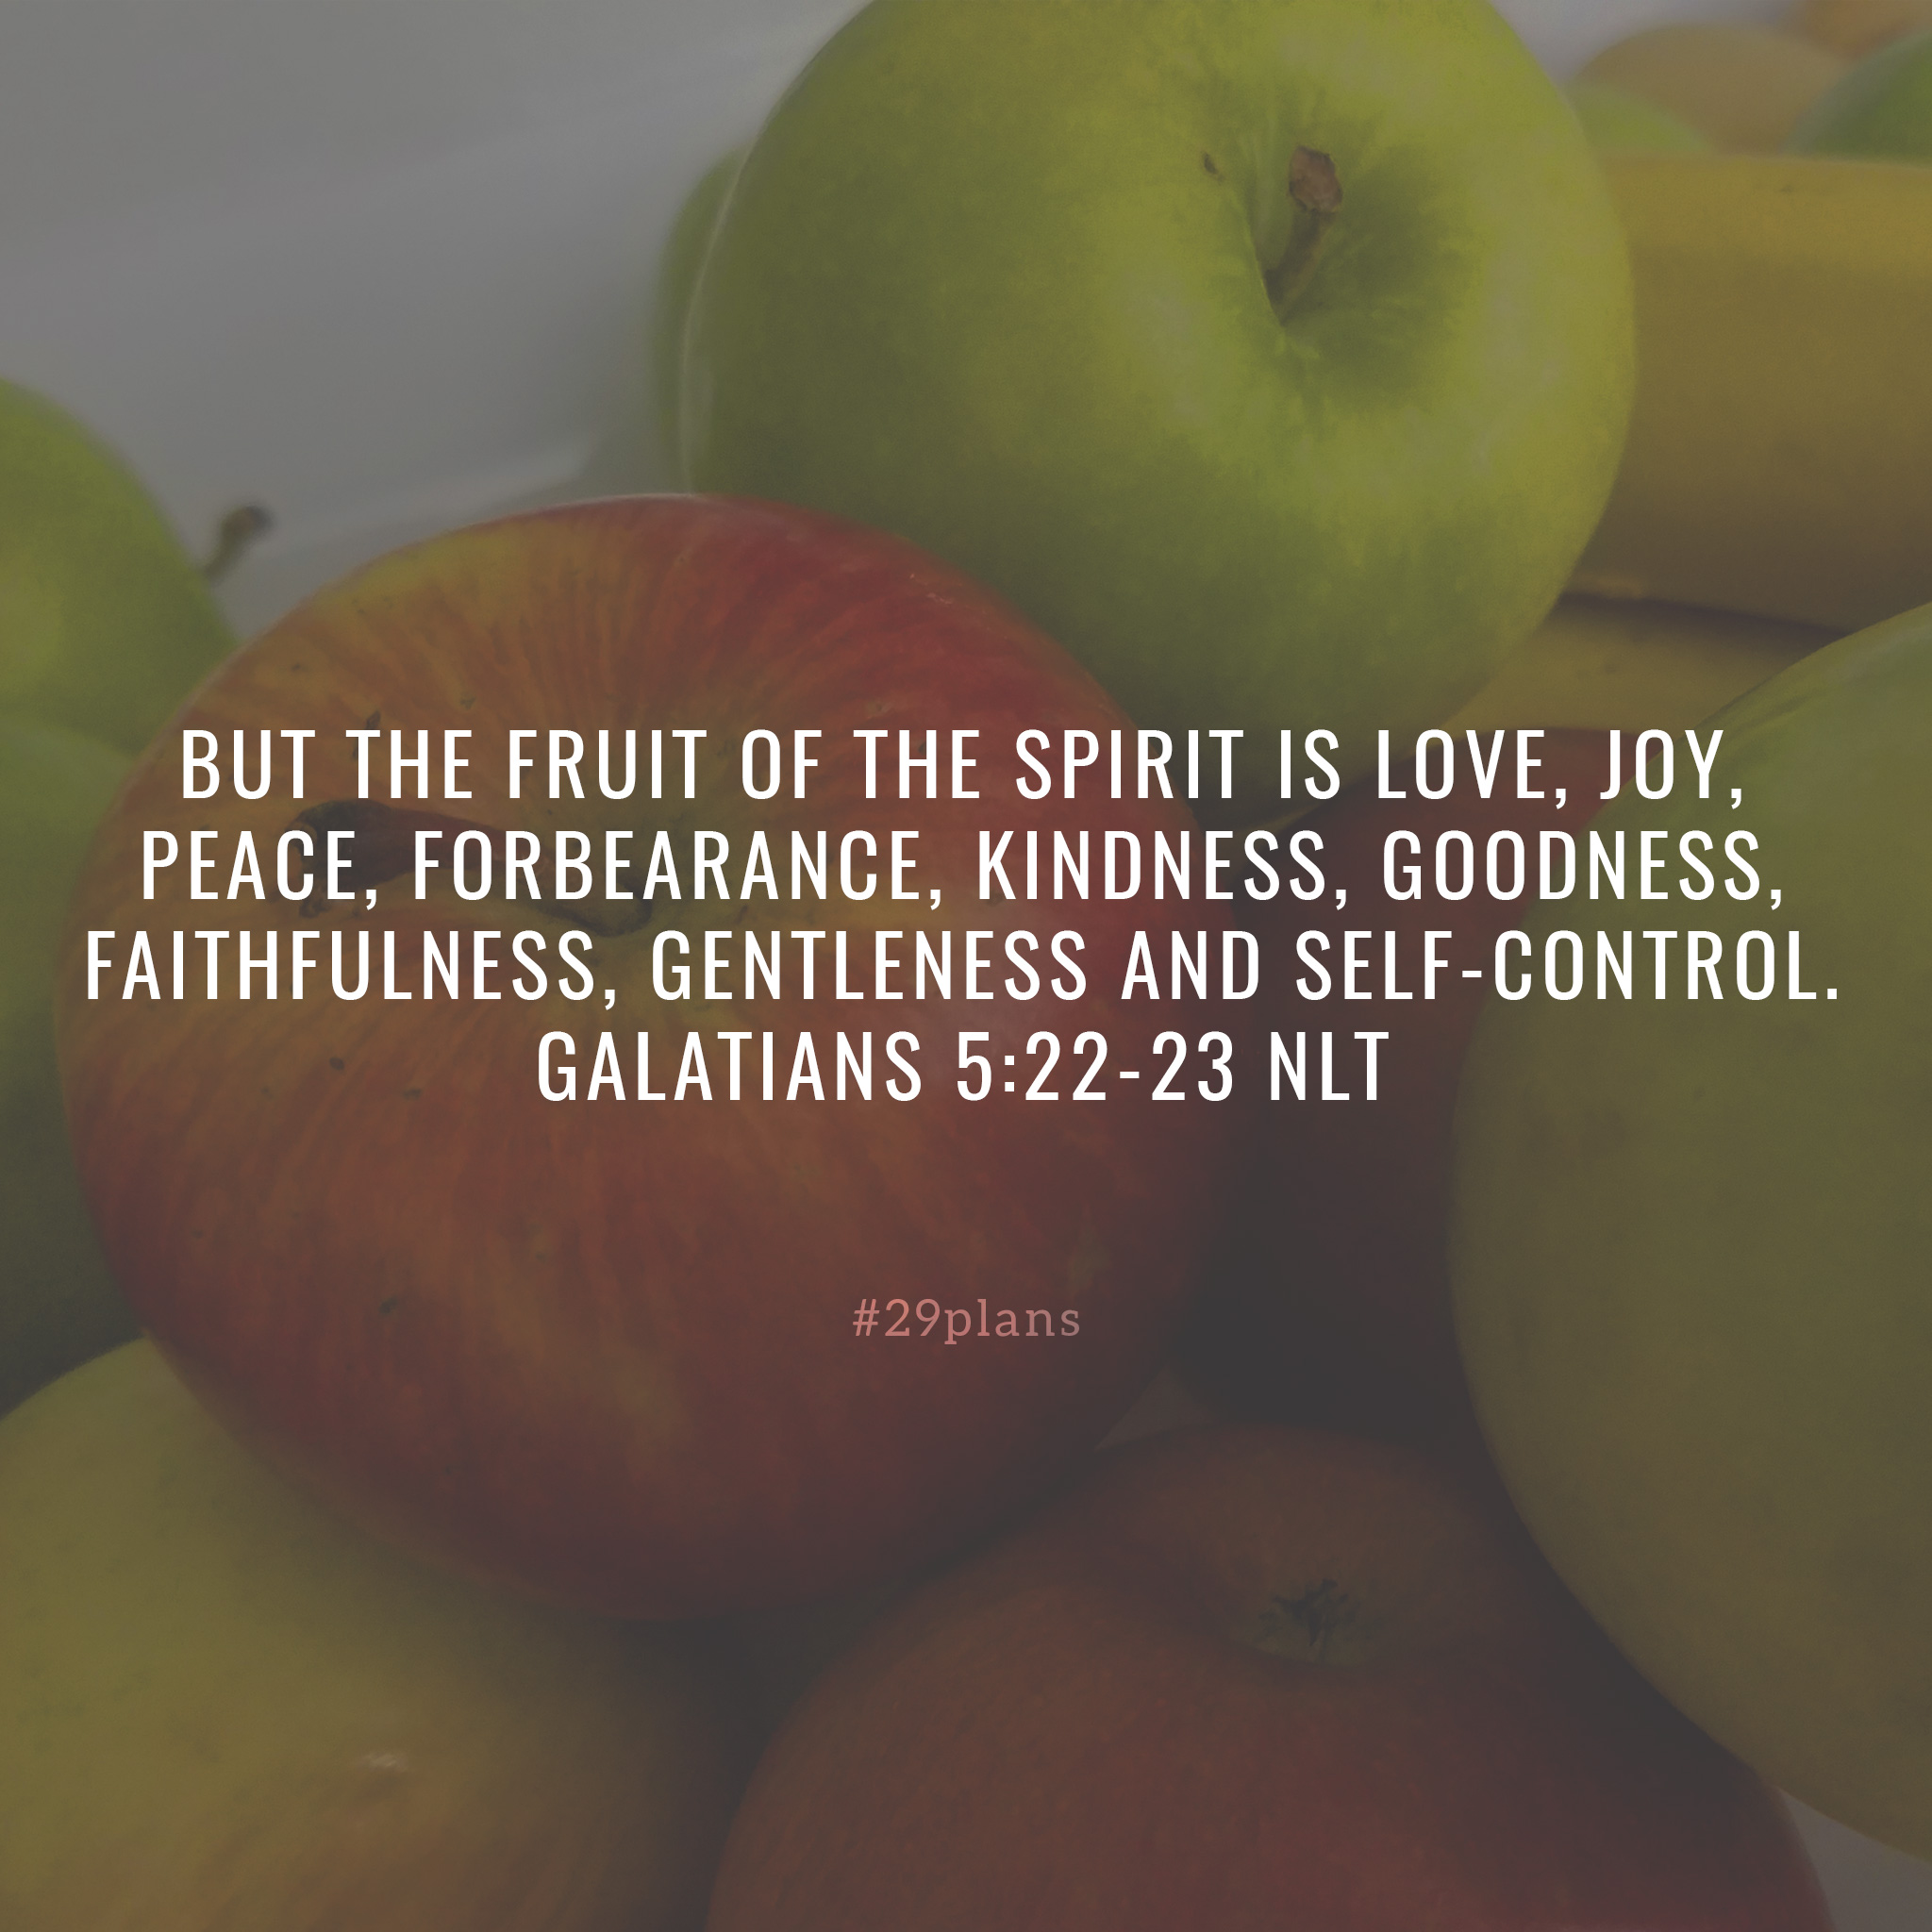 Today's Guide — 06.07.18 — Samson and the Fruits of the Spirit